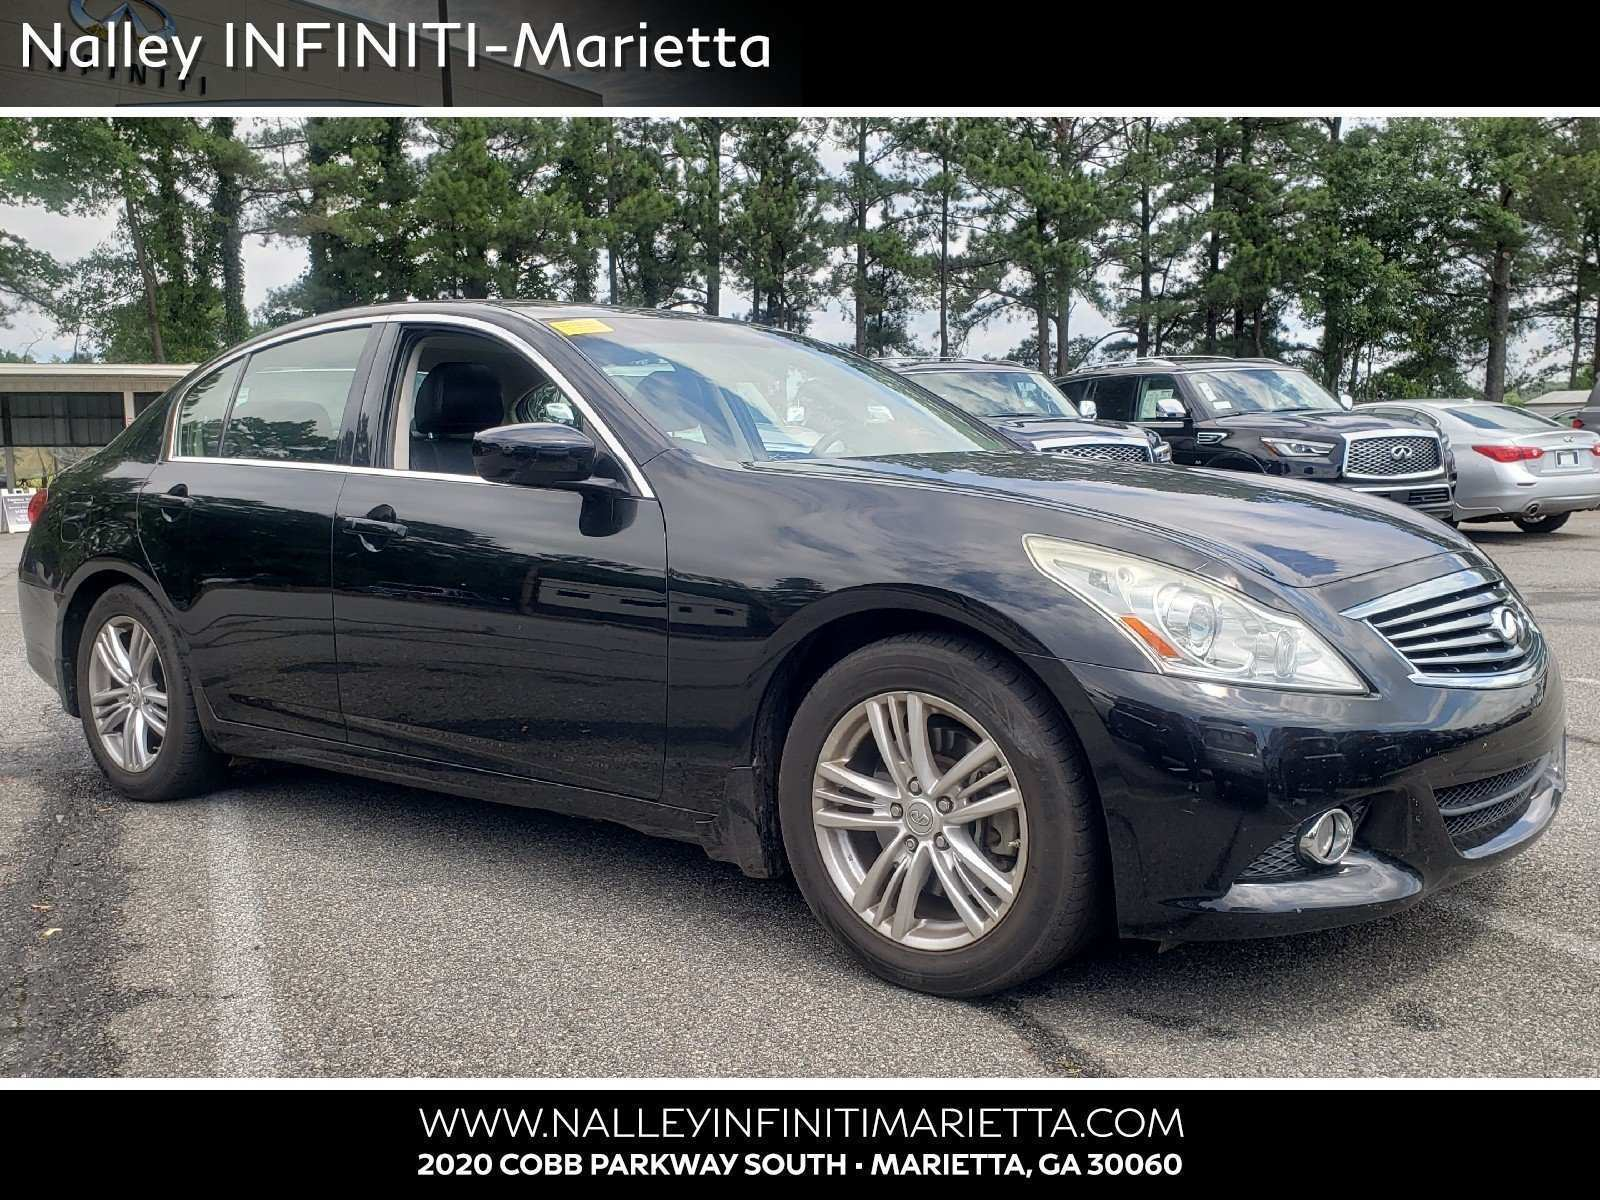 75 All New 2020 Infiniti G37 Pricing